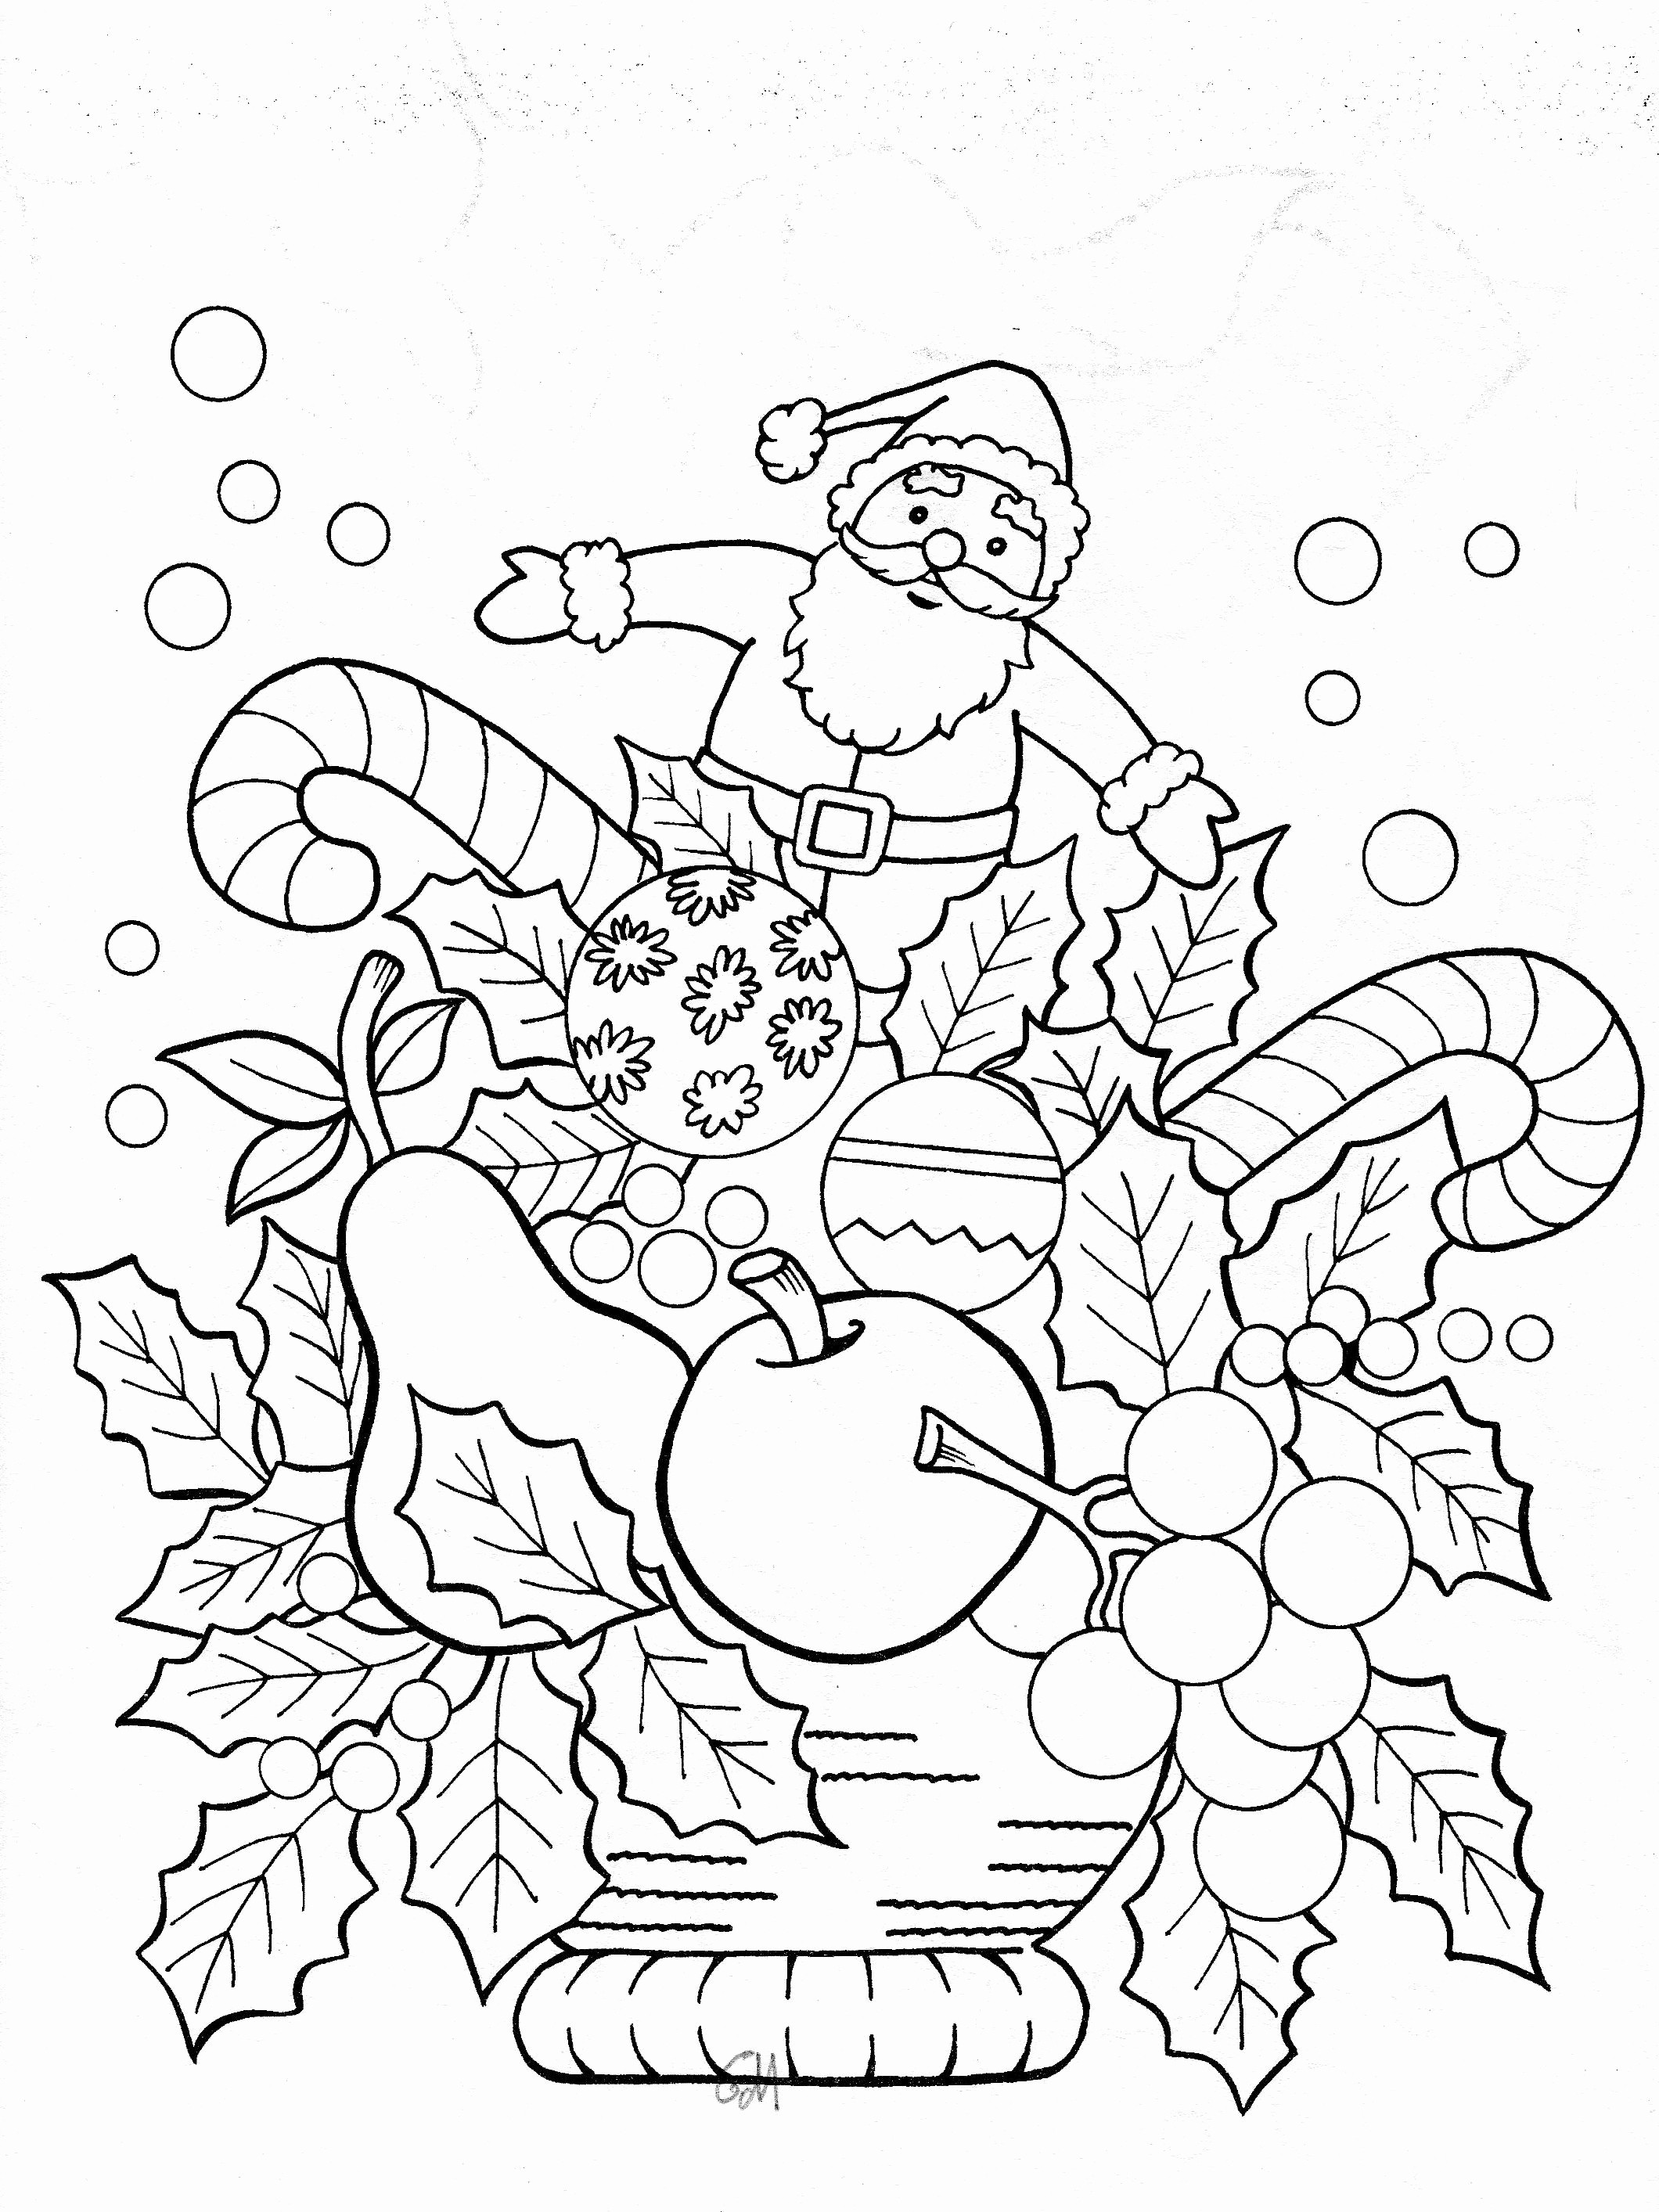 Jumbo Christmas Coloring Pages With Books Inspirationa